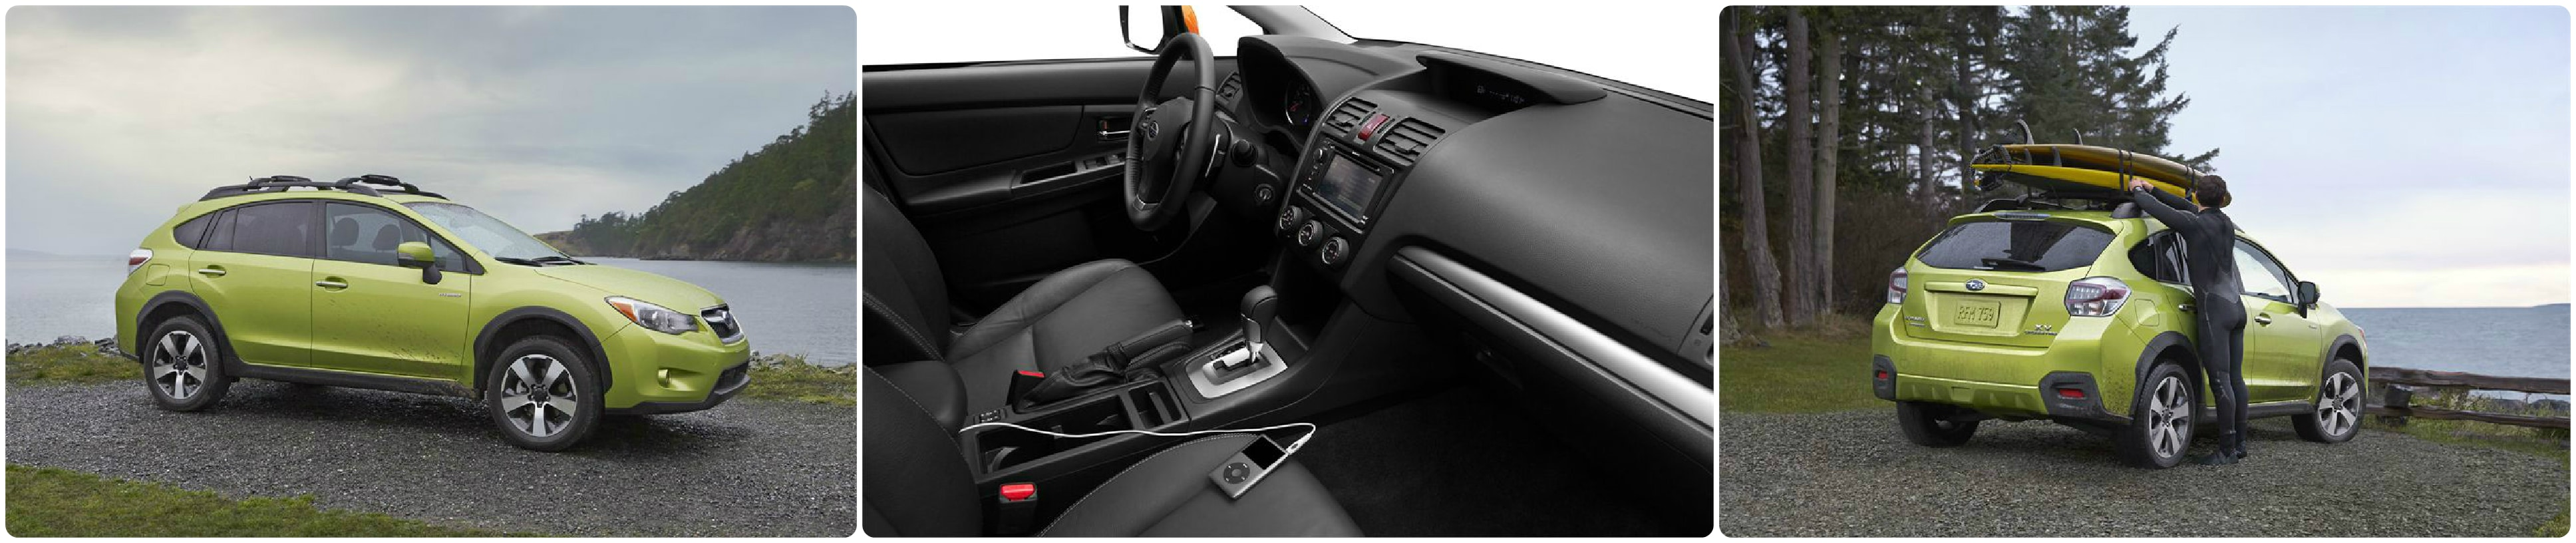 Subaru XV Crosstrek photo stitch offering interior and exterior shots in Somerset, NJ